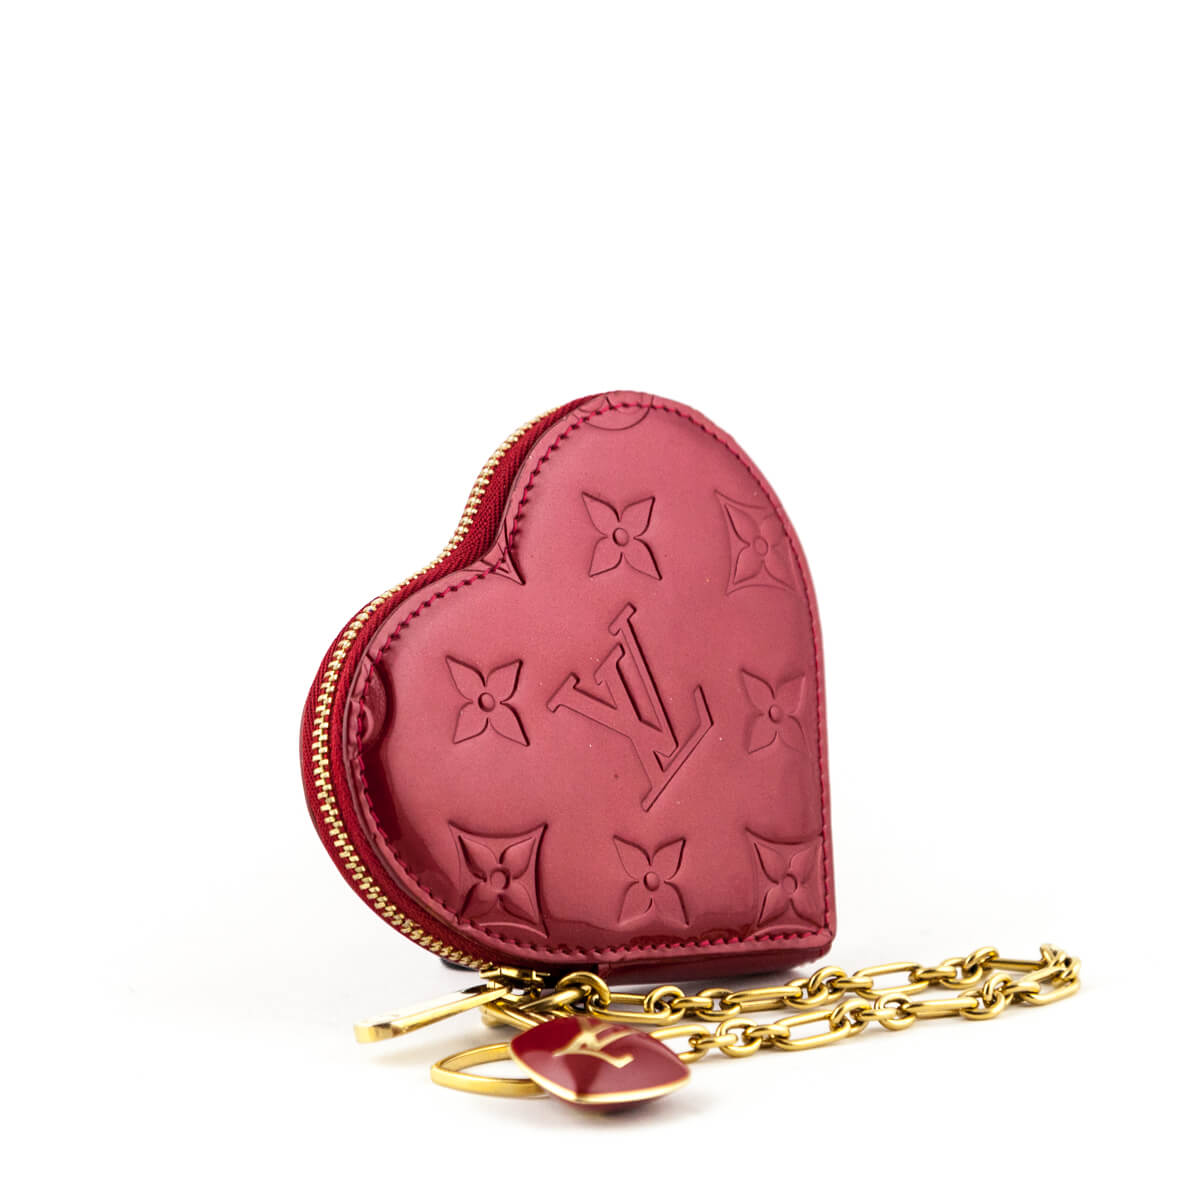 115a937ff ... Louis Vuitton Pomme d'Amour Empreinte Vernis Heart Coin Purse - LOVE  that BAG ...